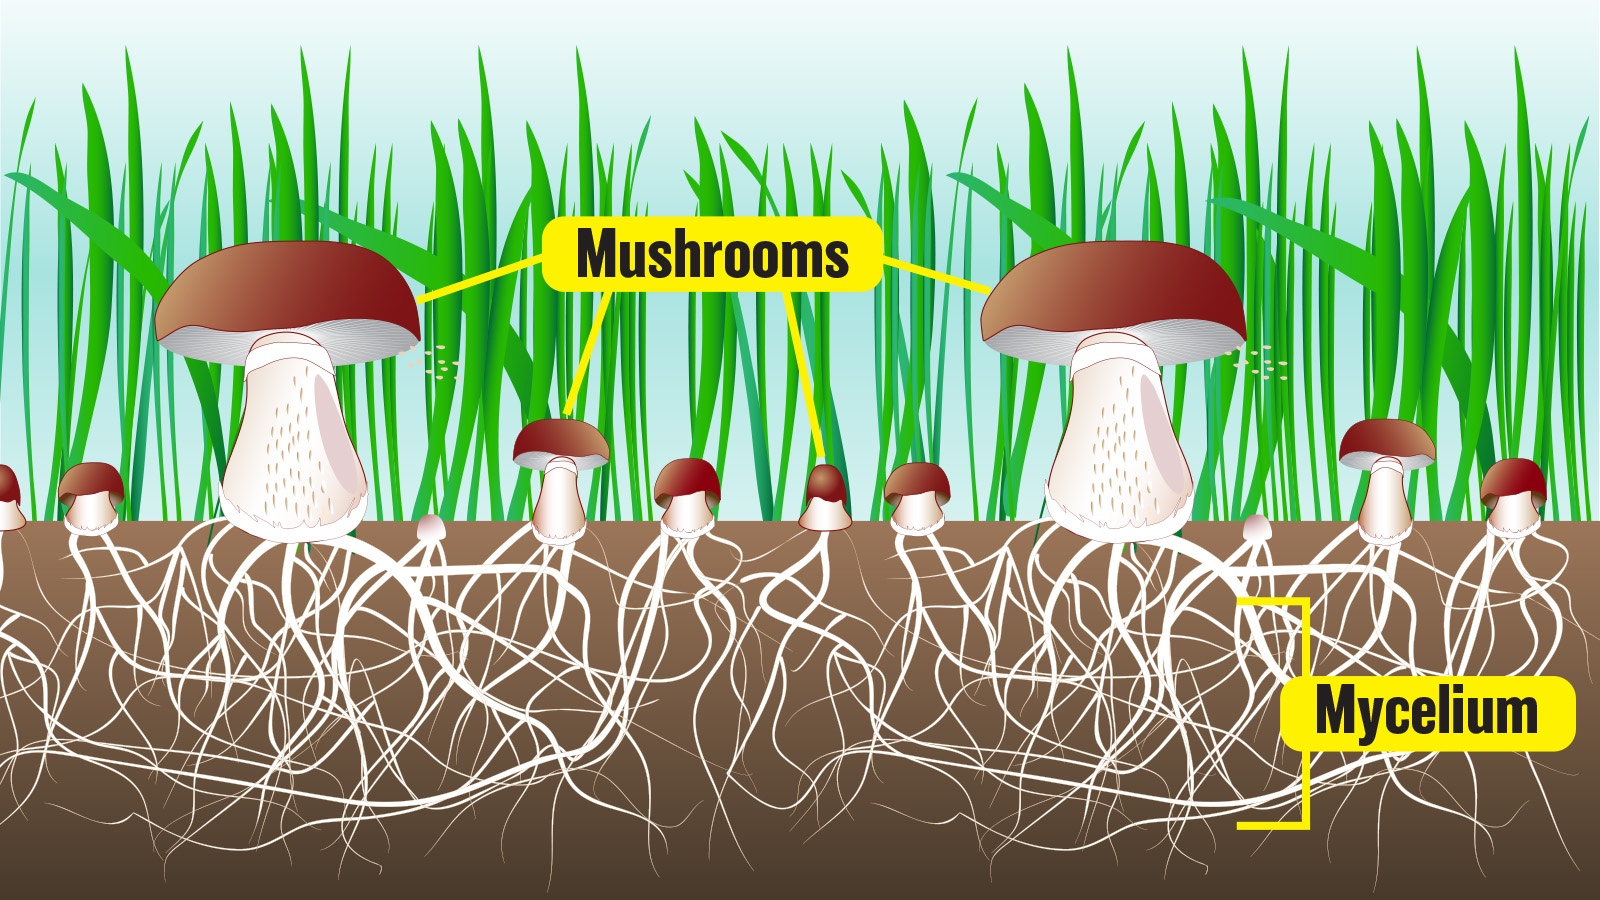 Mushrooms as decomposers